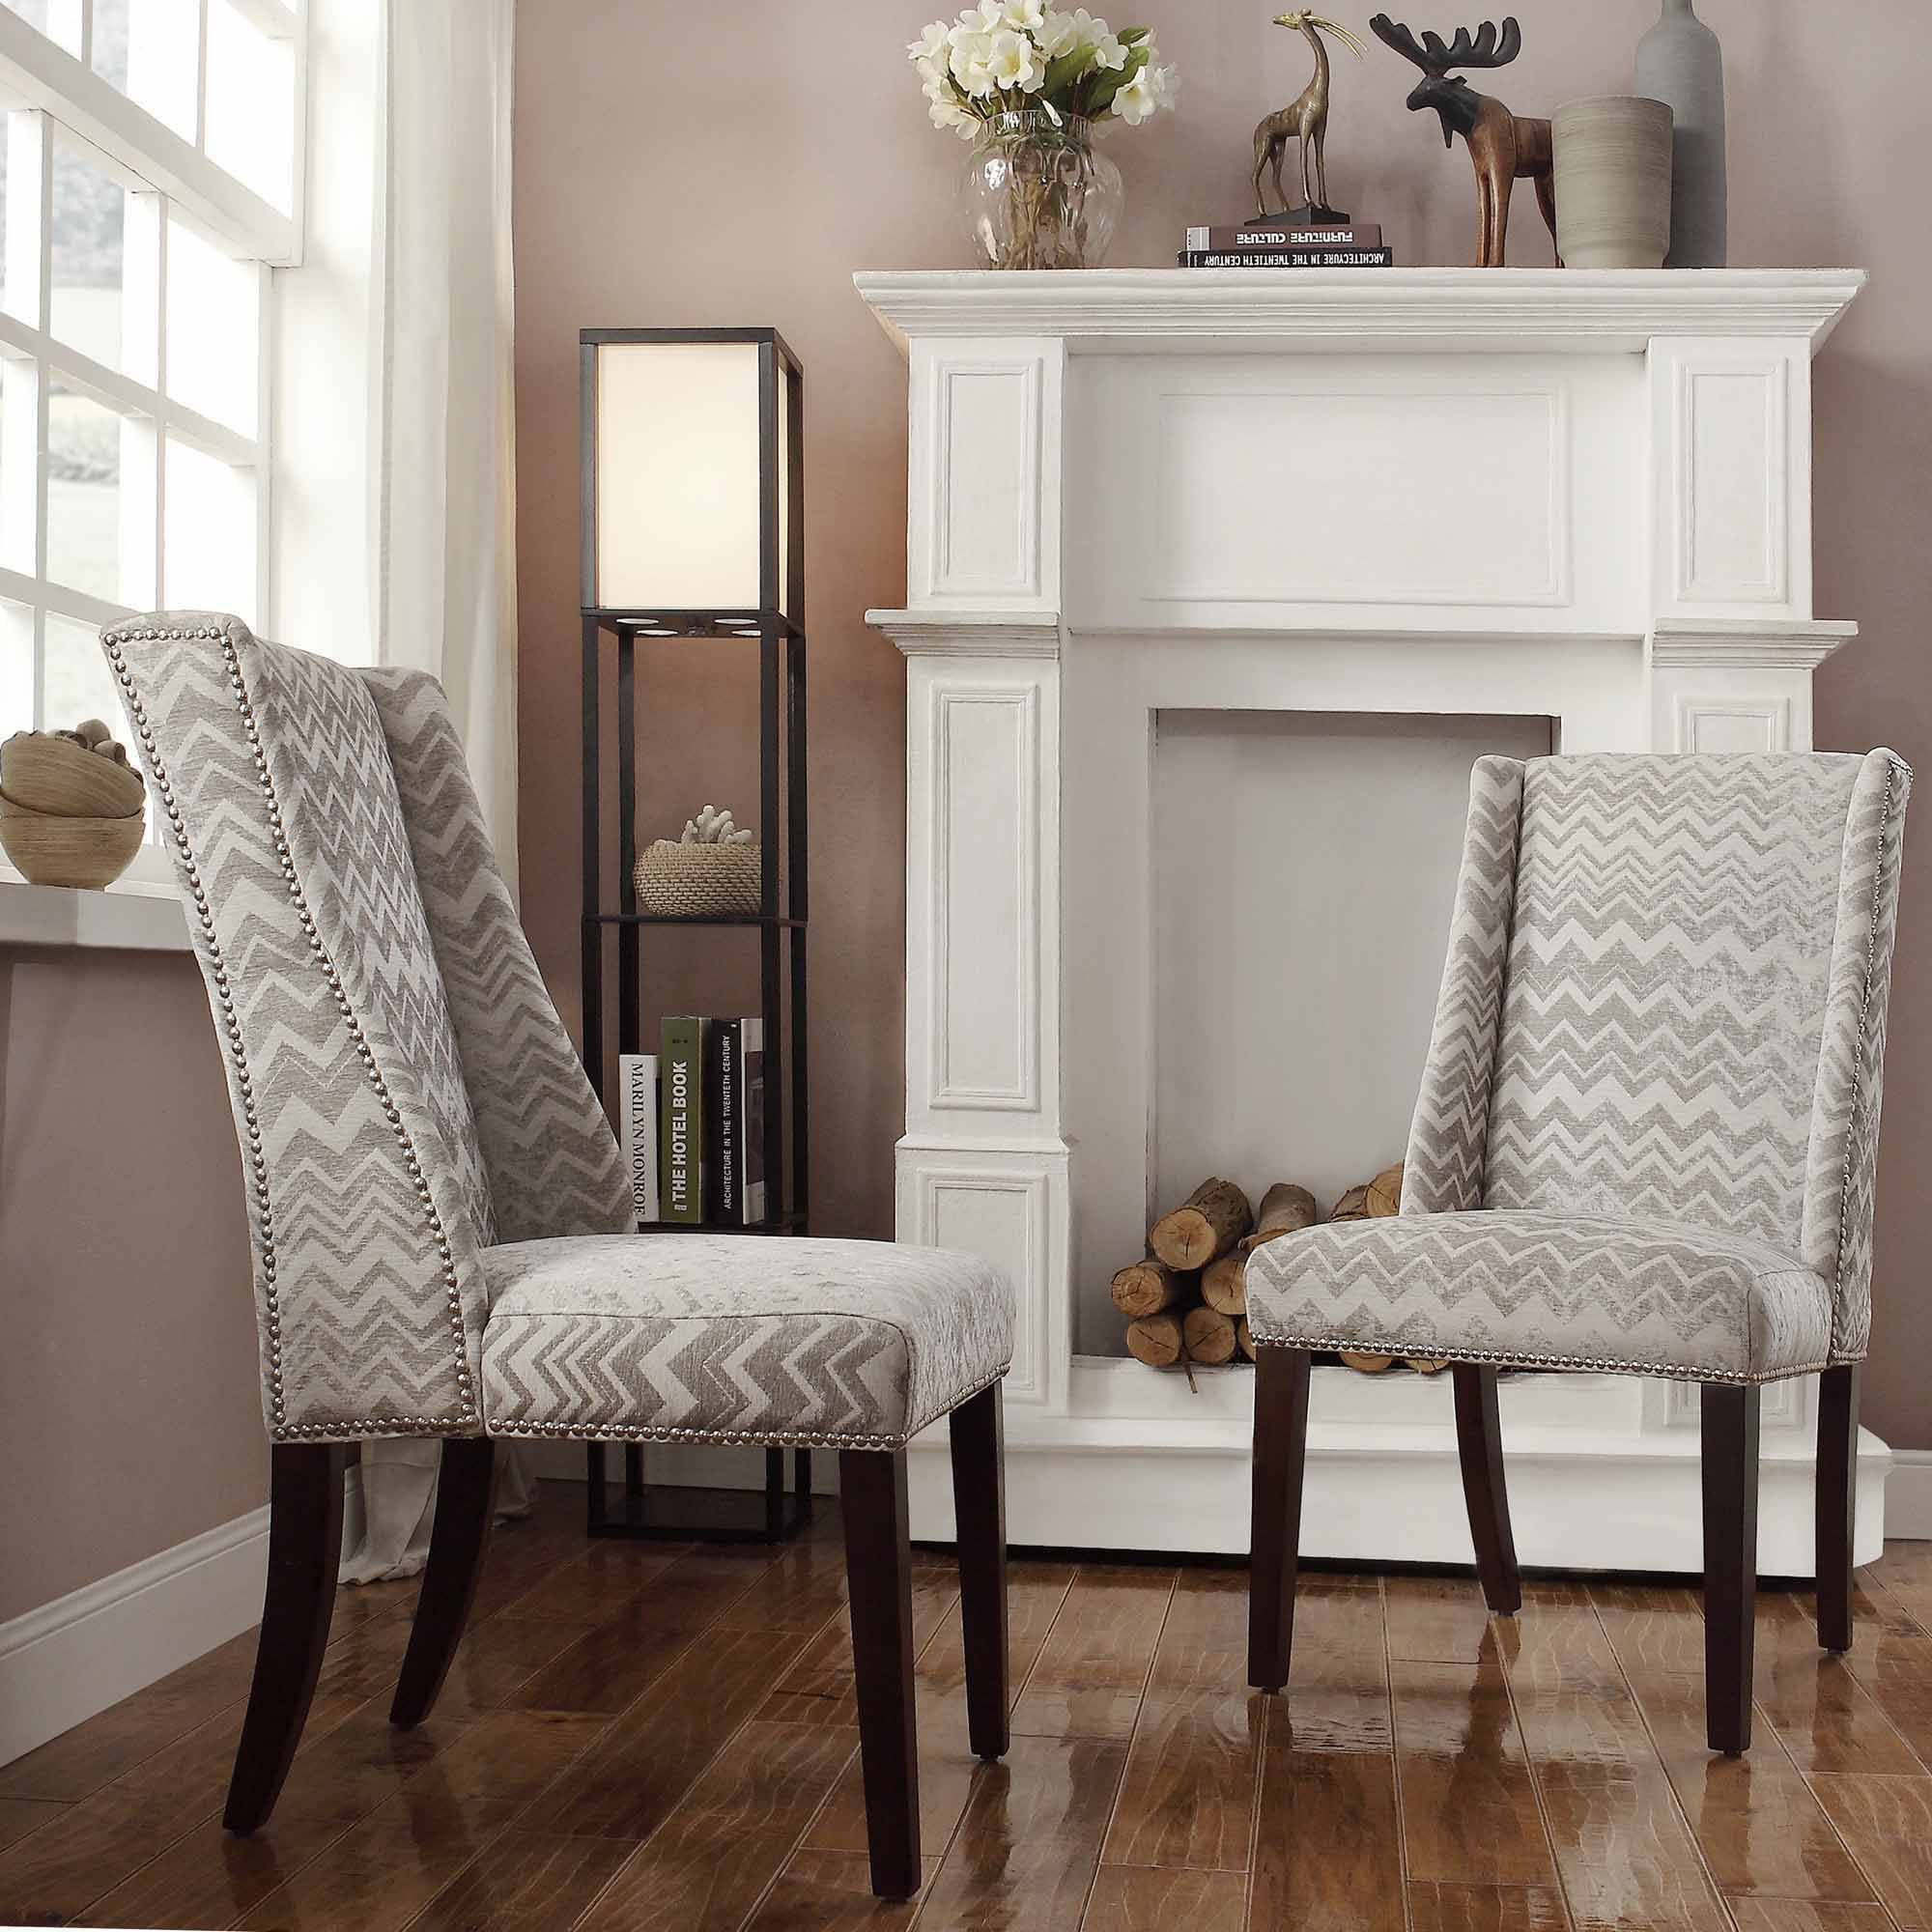 Ayana Print Wingback Nailhead Chair, Set of 2, Multiple Patterns